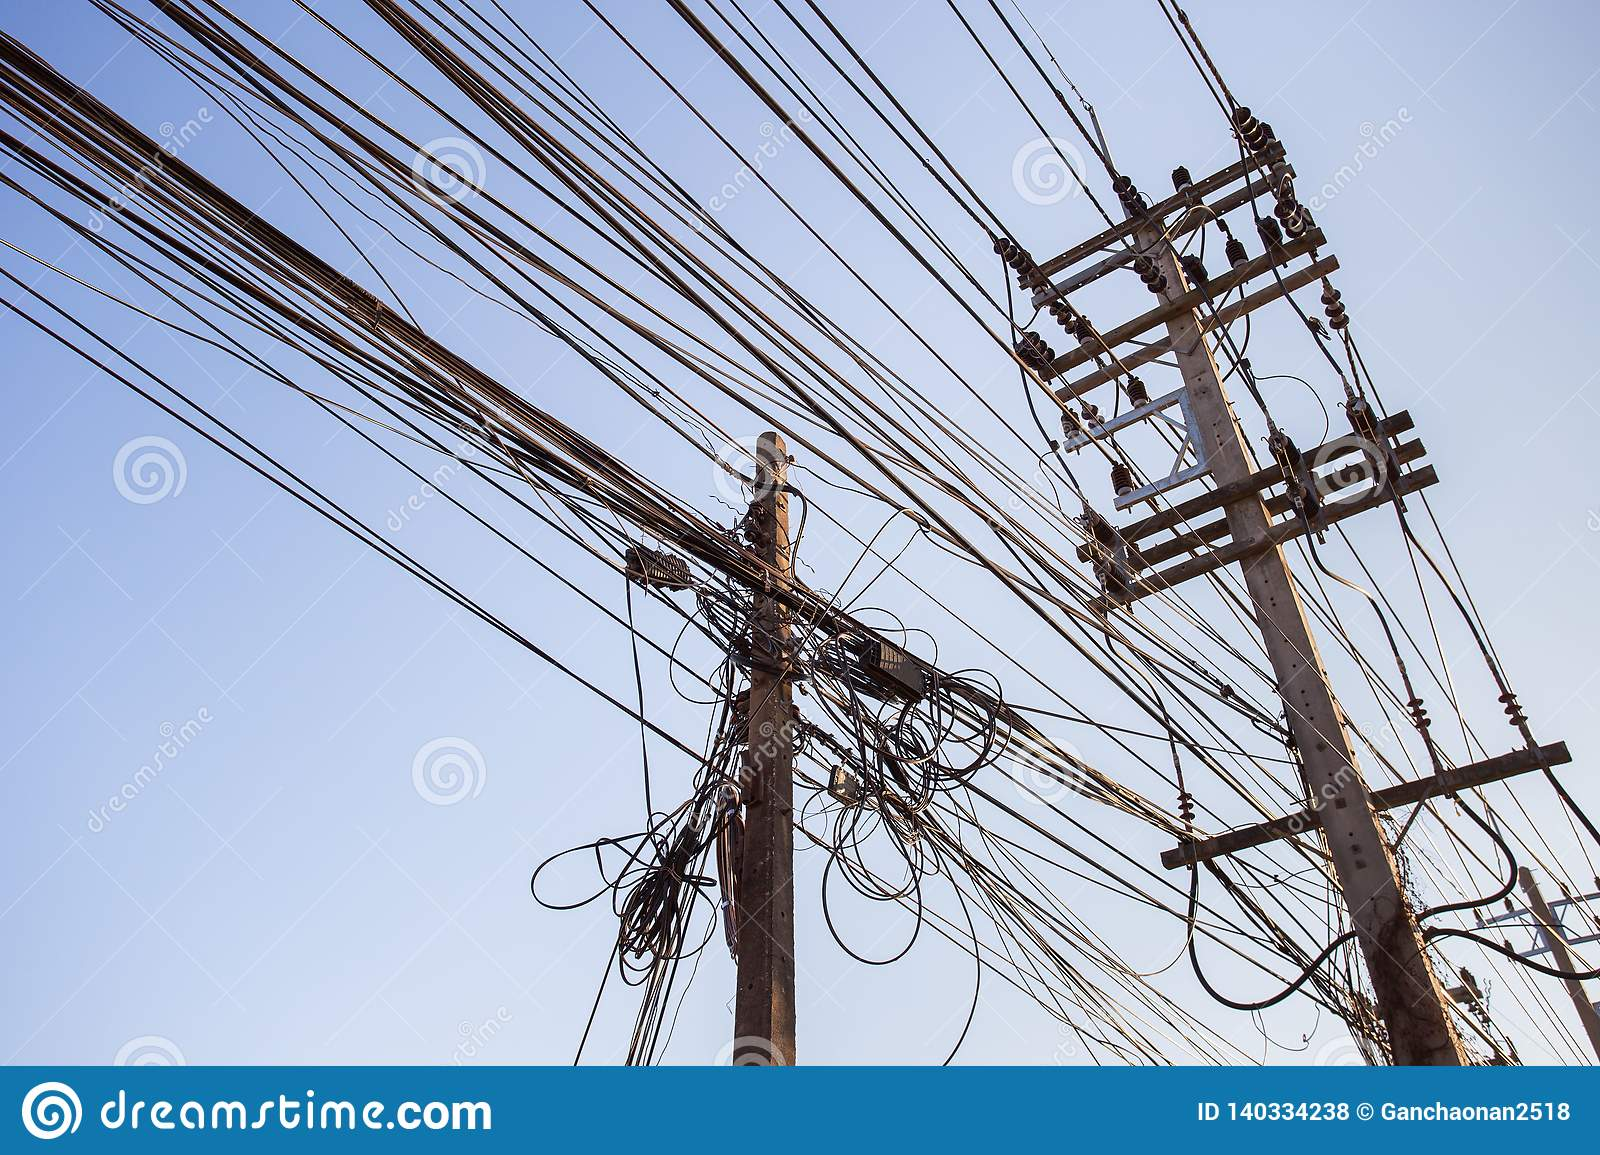 Out of focus, Messy electrical cables in India